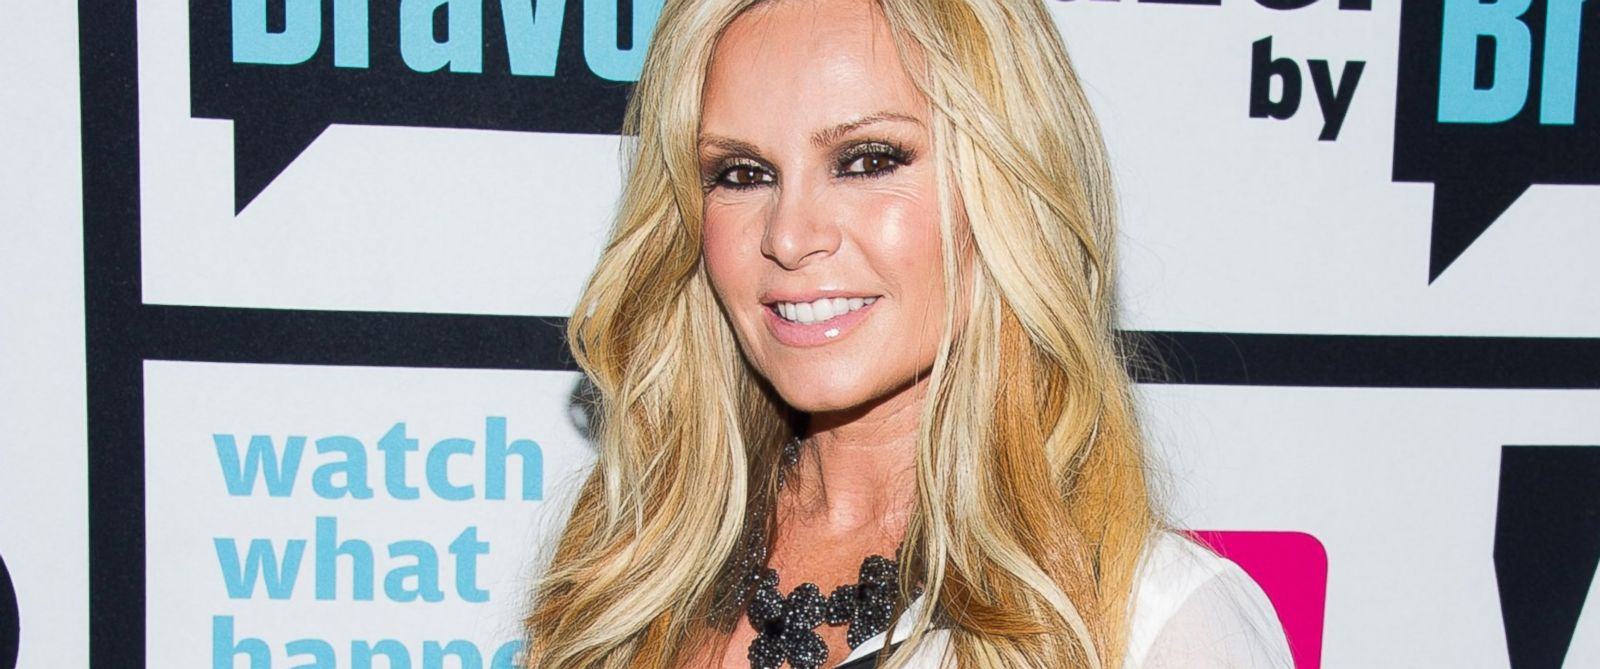 PHOTO: Tamra Judge is seen here, July 14, 2014.